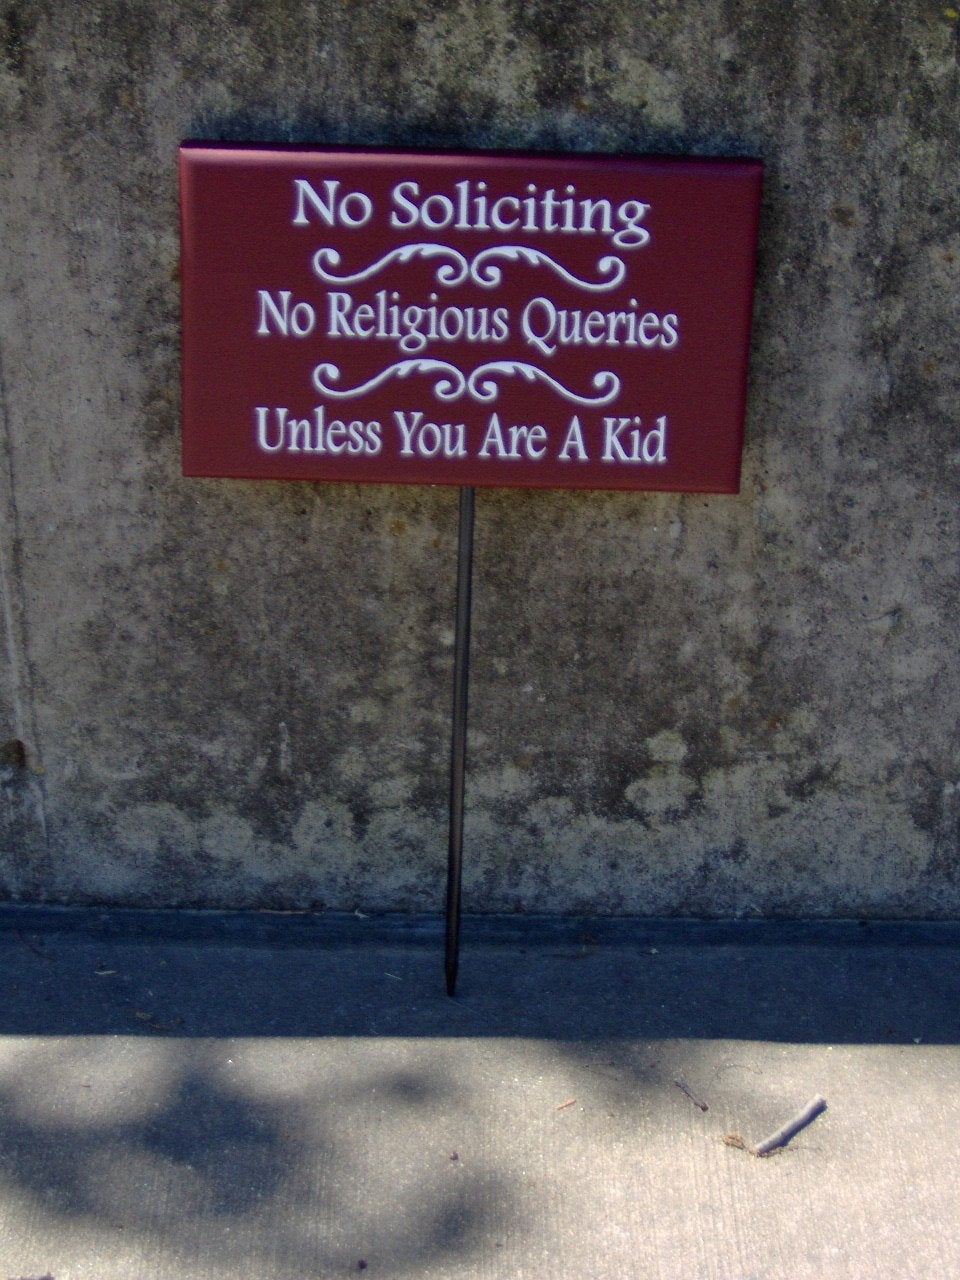 No Soliciting No Religious Queries Unless You Are A Kid Wood Vinyl Signs Yard Stake Rustic Red Garden Art Outdoor Yard Decor Exterior Porch